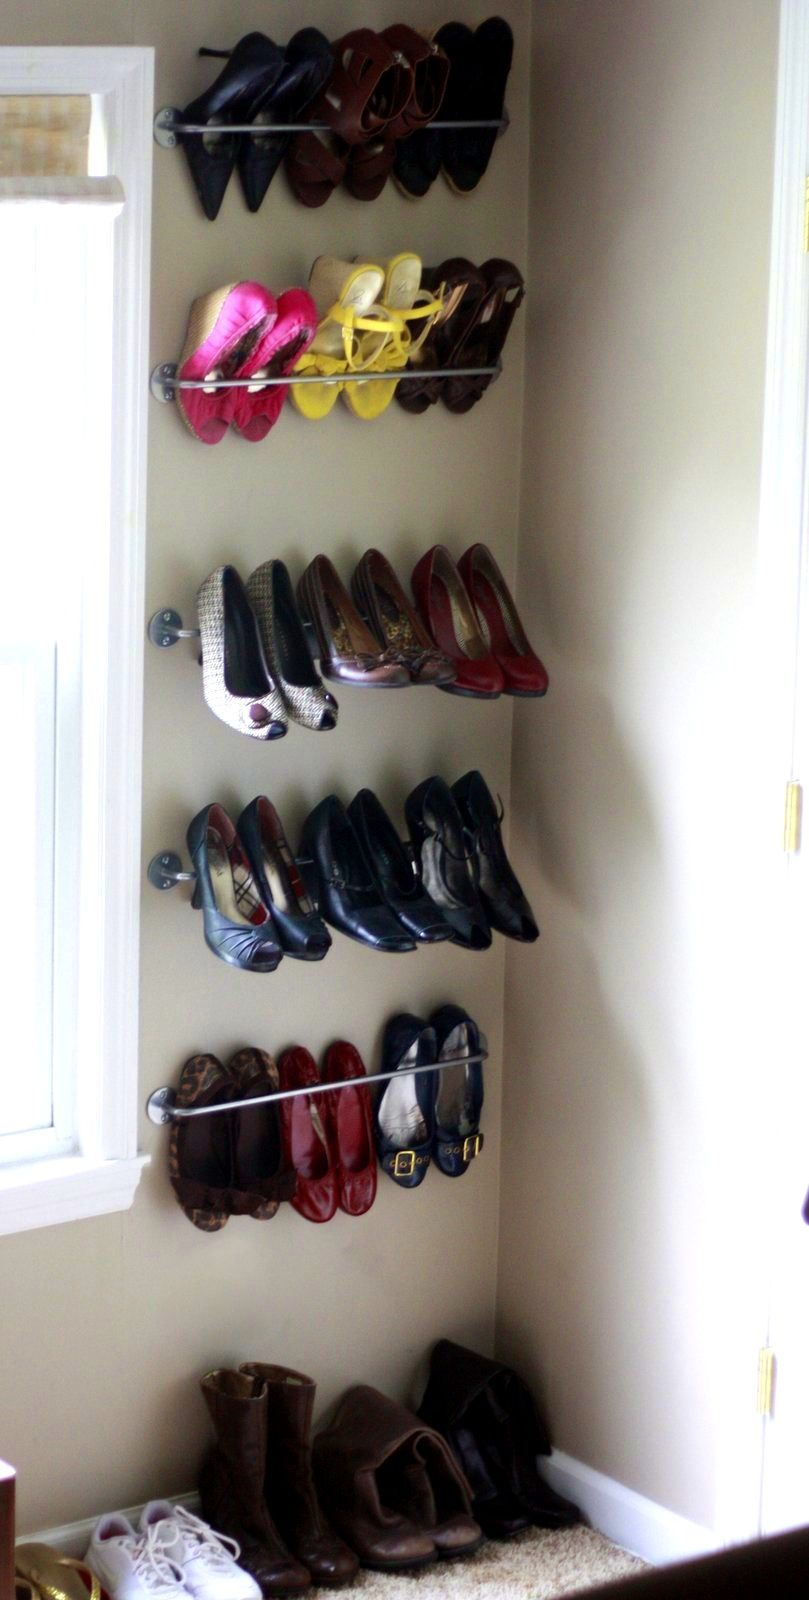 Decor Ikea Shoe Storage, Simple Shoes Rack, Stainless Hanging Shelves. Great